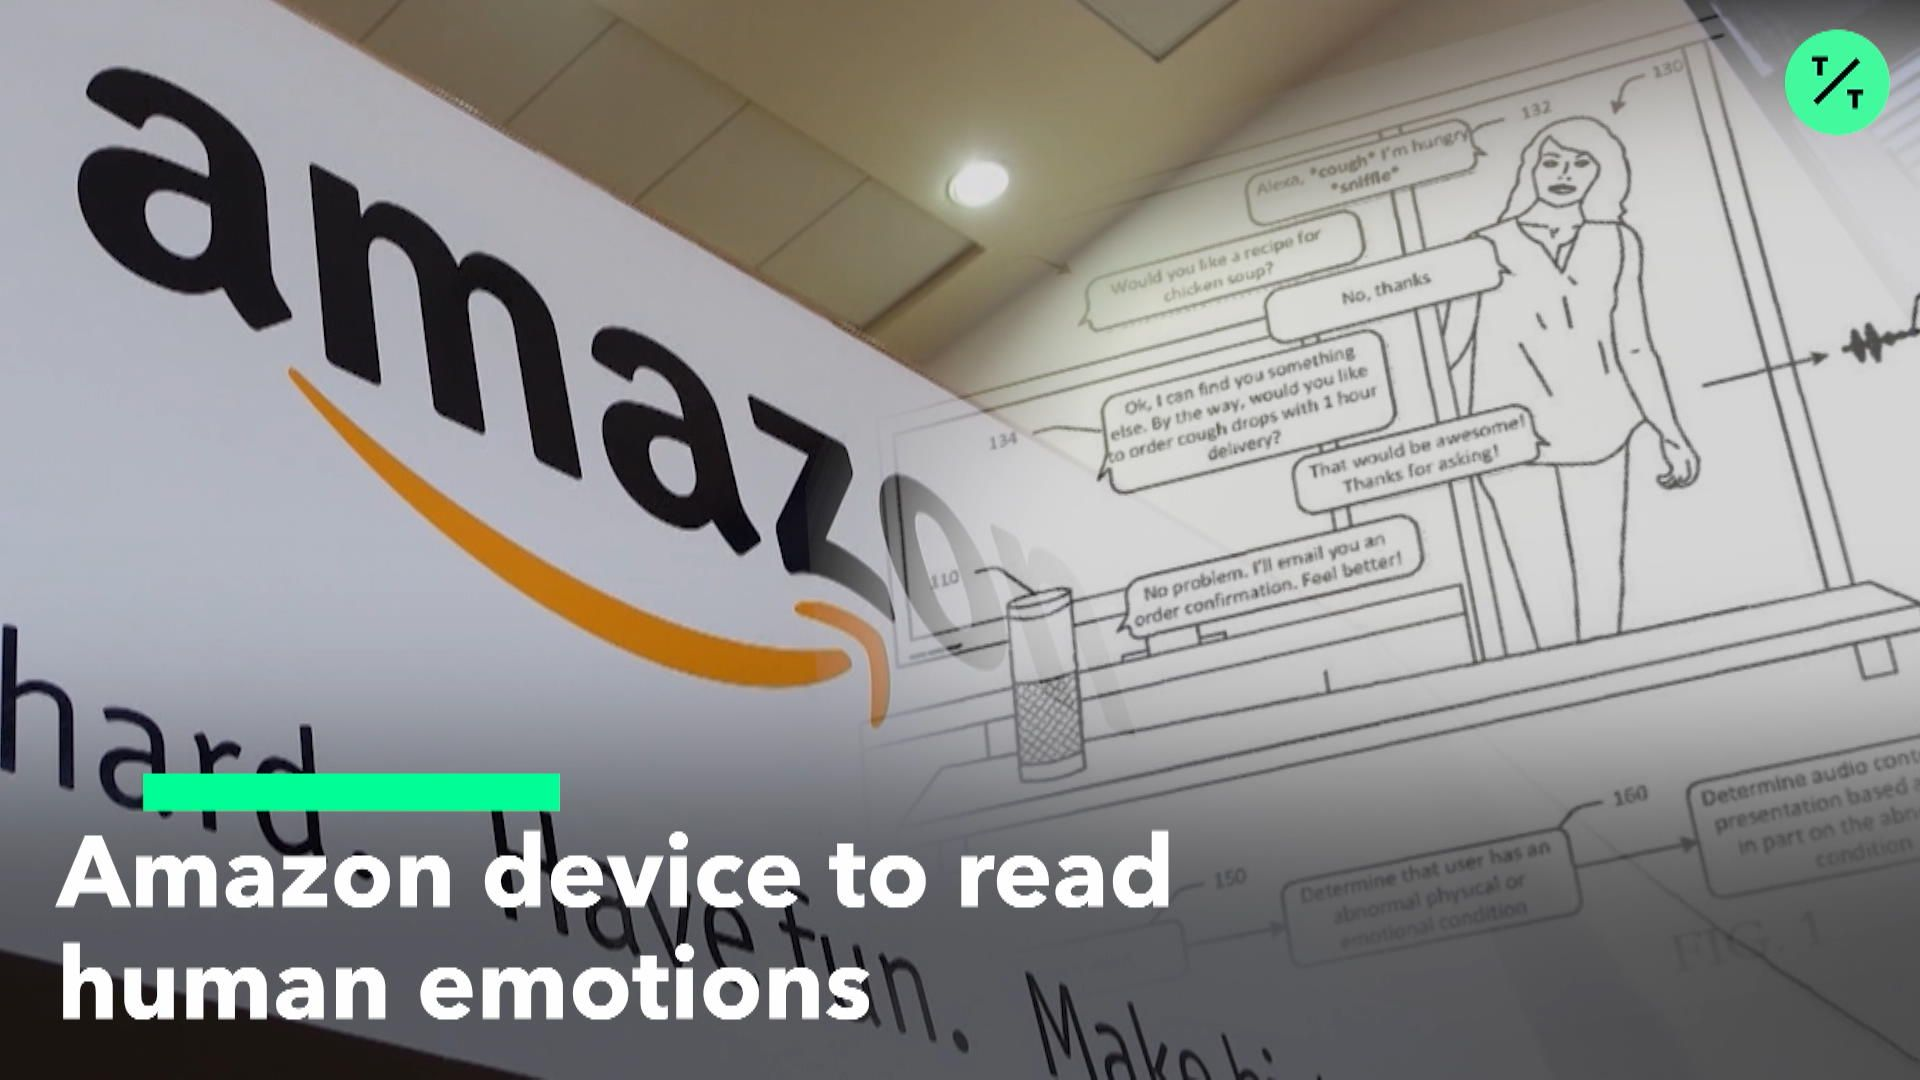 Amazon Reportedly Developing a Device That Reads Human Emotions